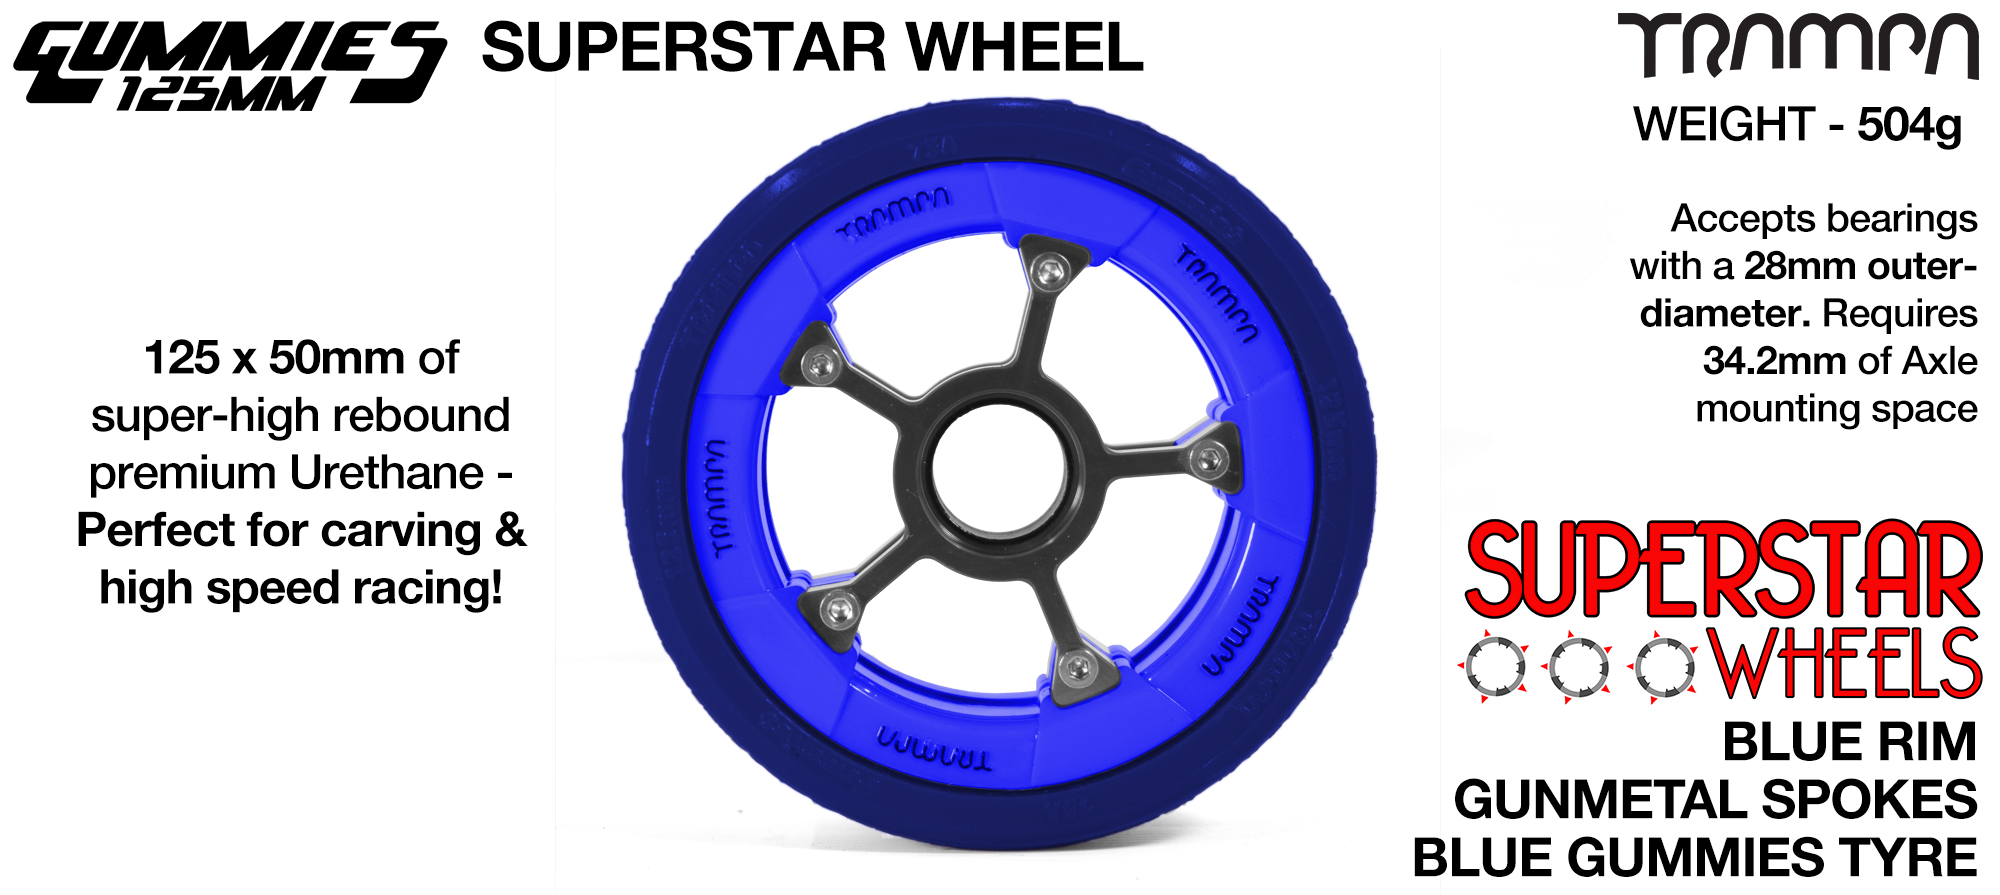 Superstar 125mm Longboard Wheels - Gloss BLACK Superstar Rim BLACK Spokes & BLACK Gummies  Superstar Rim with Black Spokes & BLACK Gummies 125mm Longboard Wheel Tyre